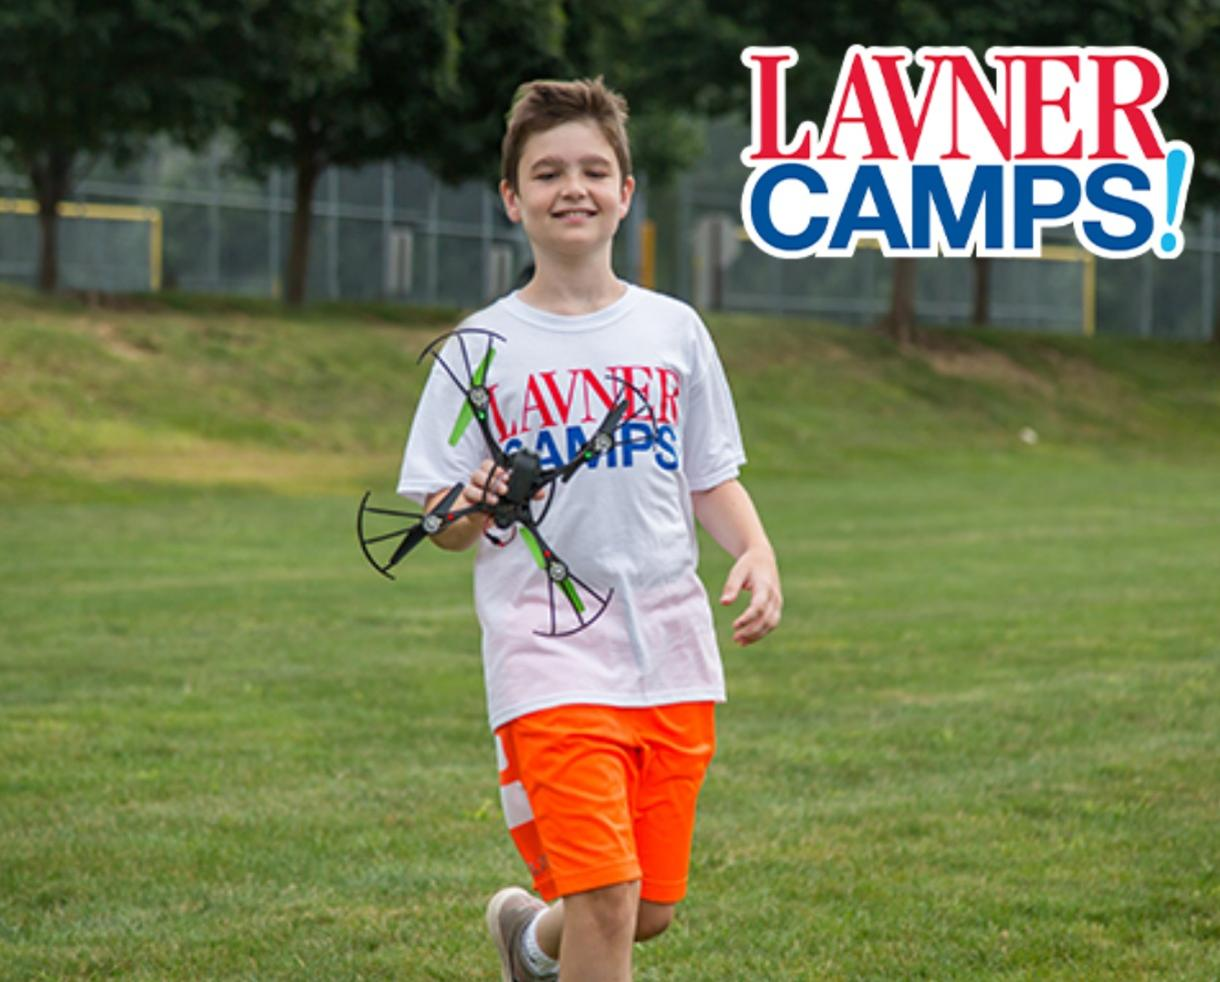 $389+ for Lavner Technology and Creative Arts Camps for Ages 6-15 at George Washington University - Robotics, 3D Innovation with Minecraft™, Game Design, Fashion Design, Filmmaking & More! (25% Off)